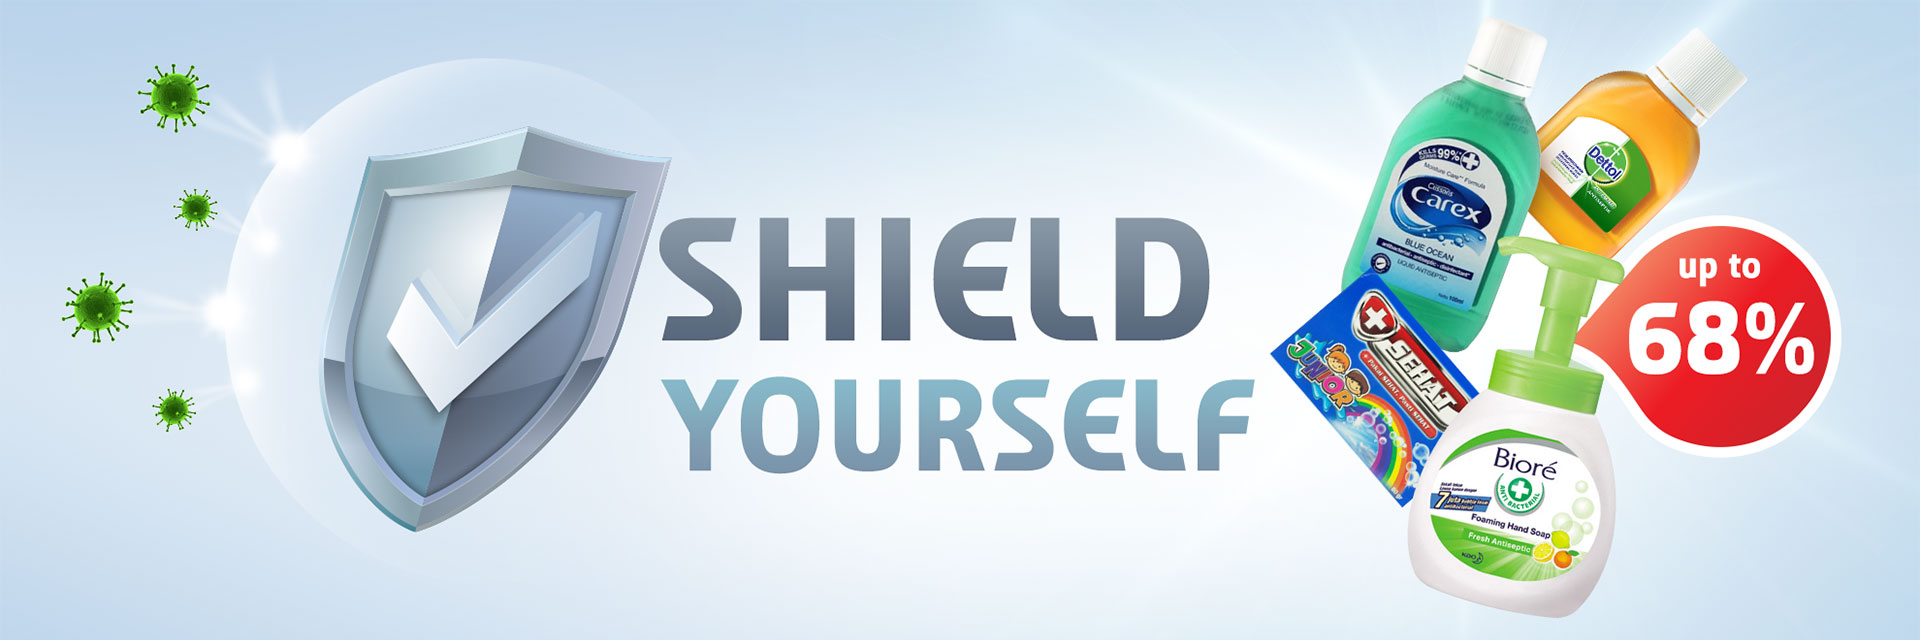 shield yourself